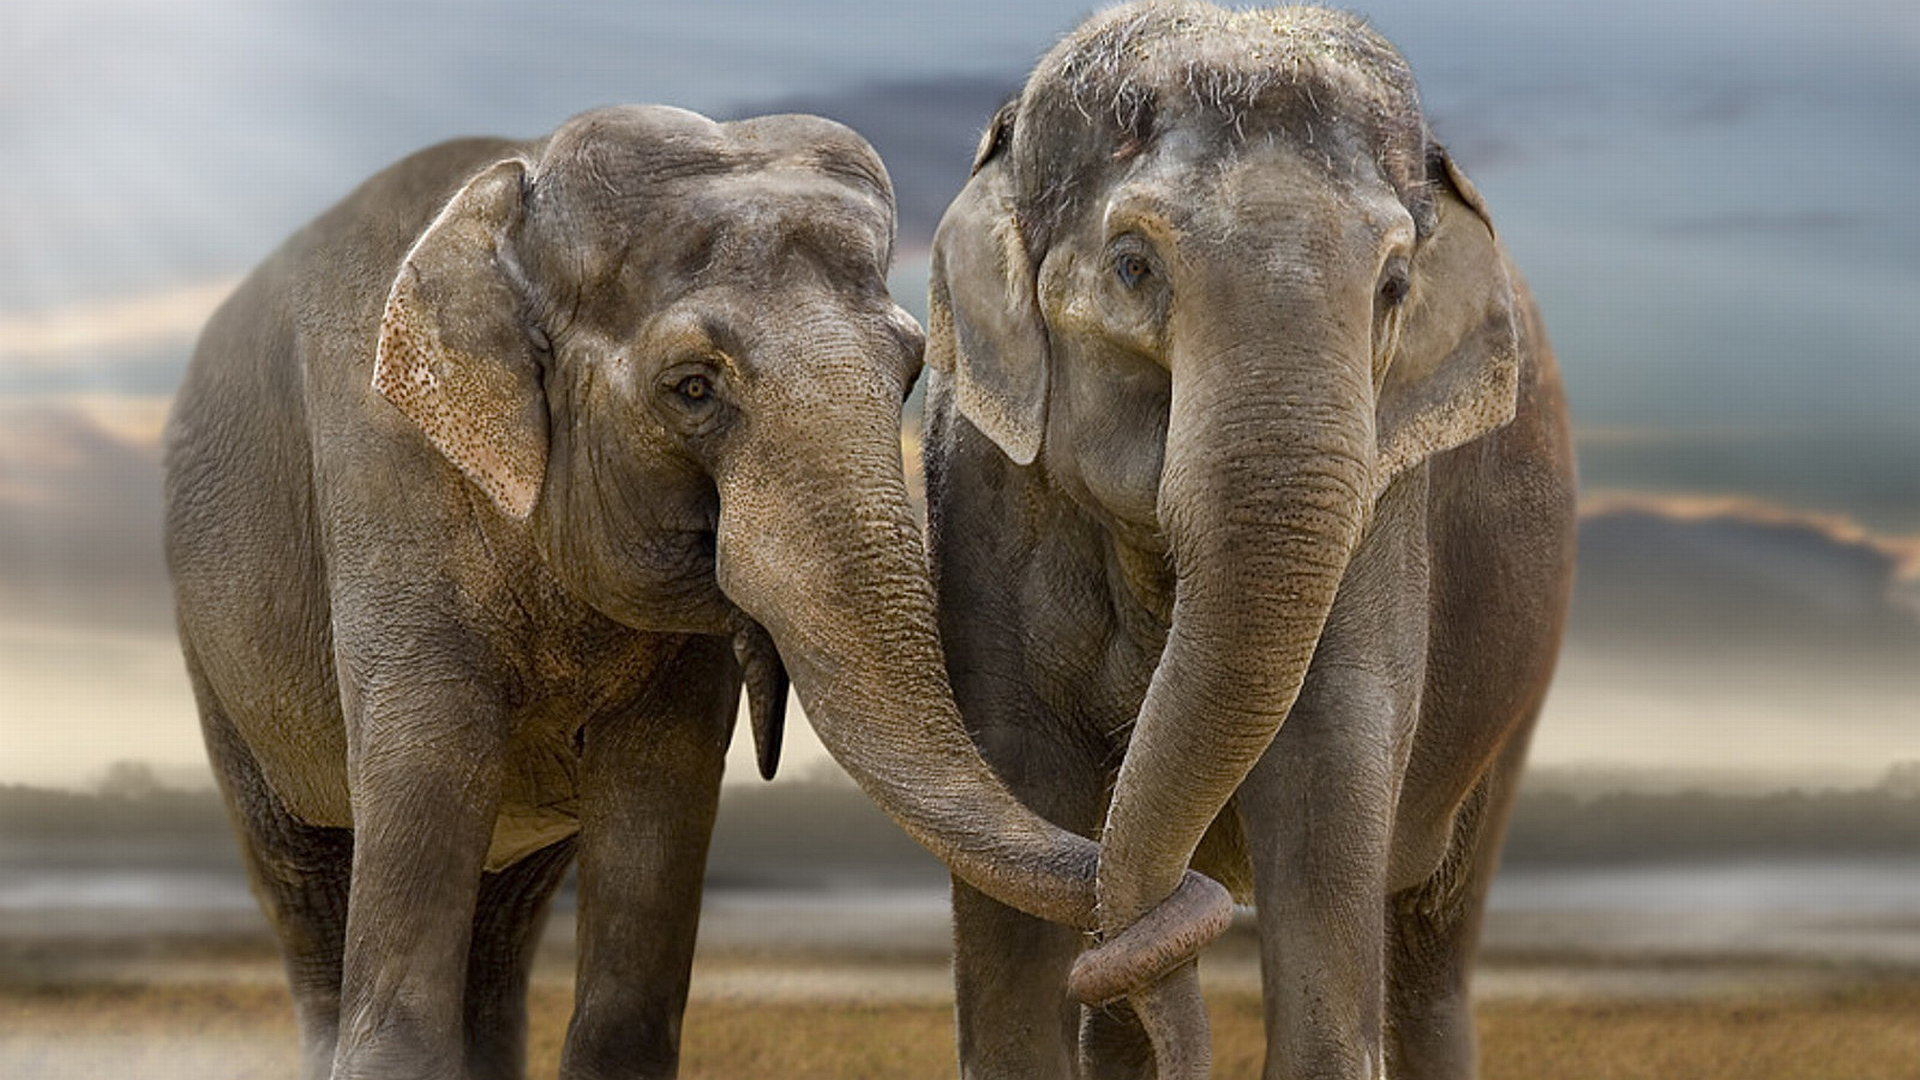 elephant full hd wallpaper and background image | 1920x1080 | id:169013